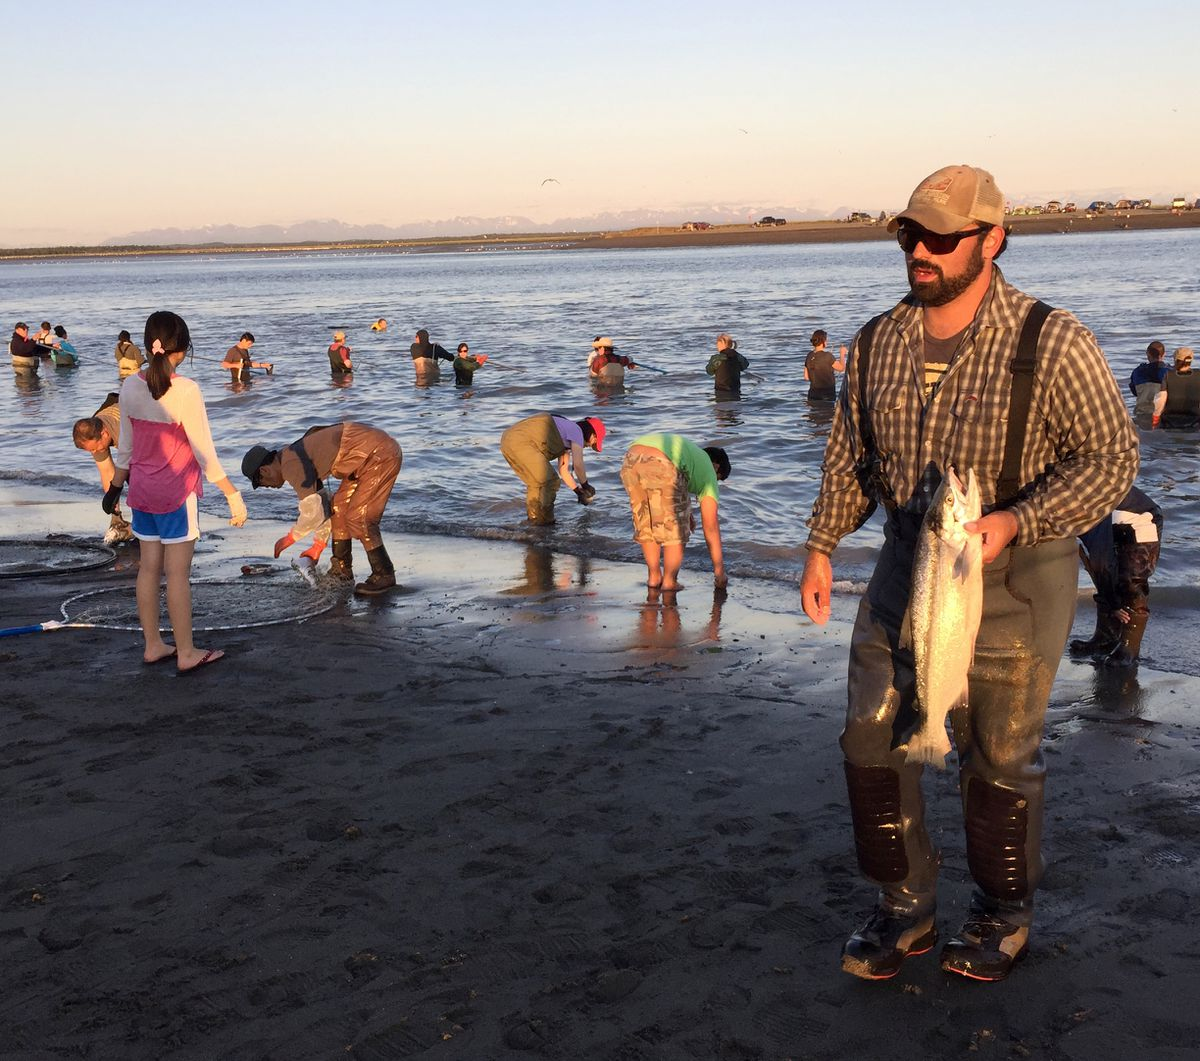 Thousands of people were on the Kenai River to dipnet for sockeye salmon in July 2015. (Anne Raup / Alaska Dispatch News)